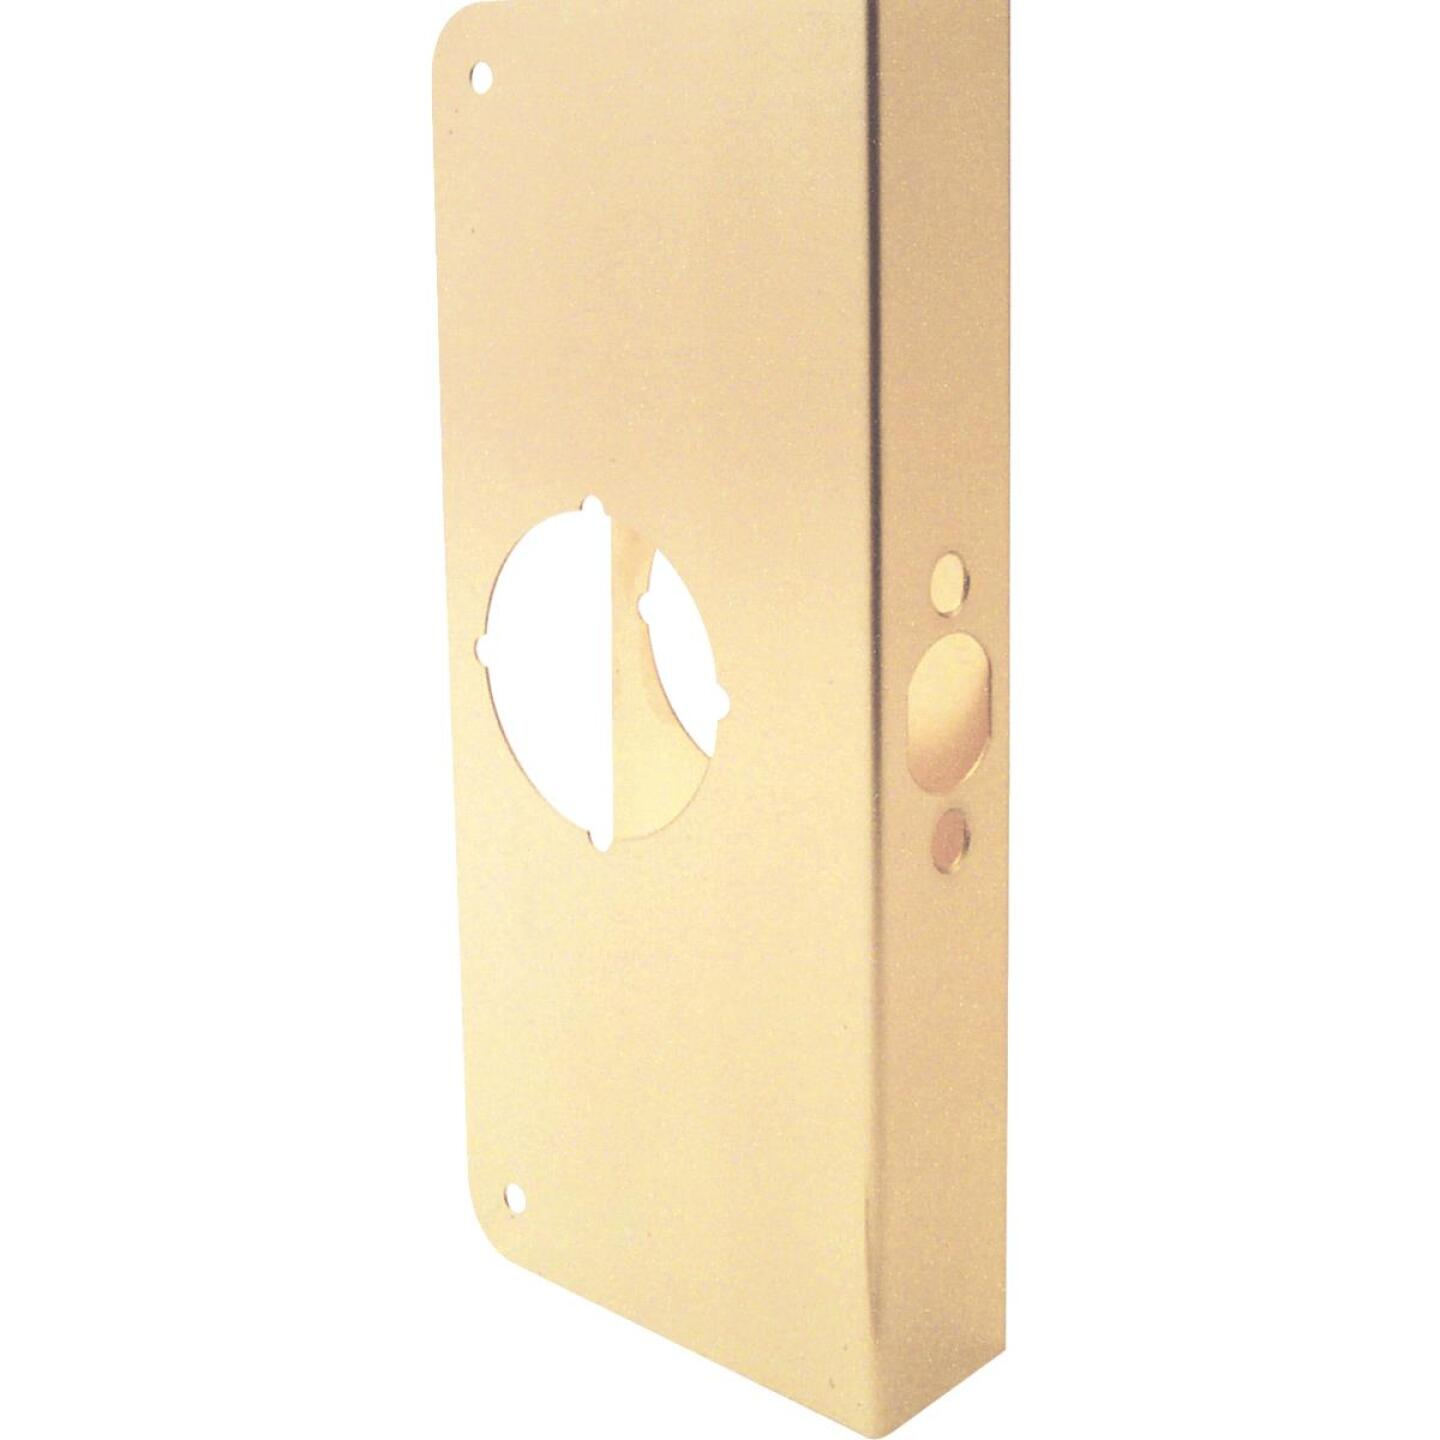 Defender Security 1-3/8 In. x 2-3/8 In. Brass Door Reinforcer Image 2